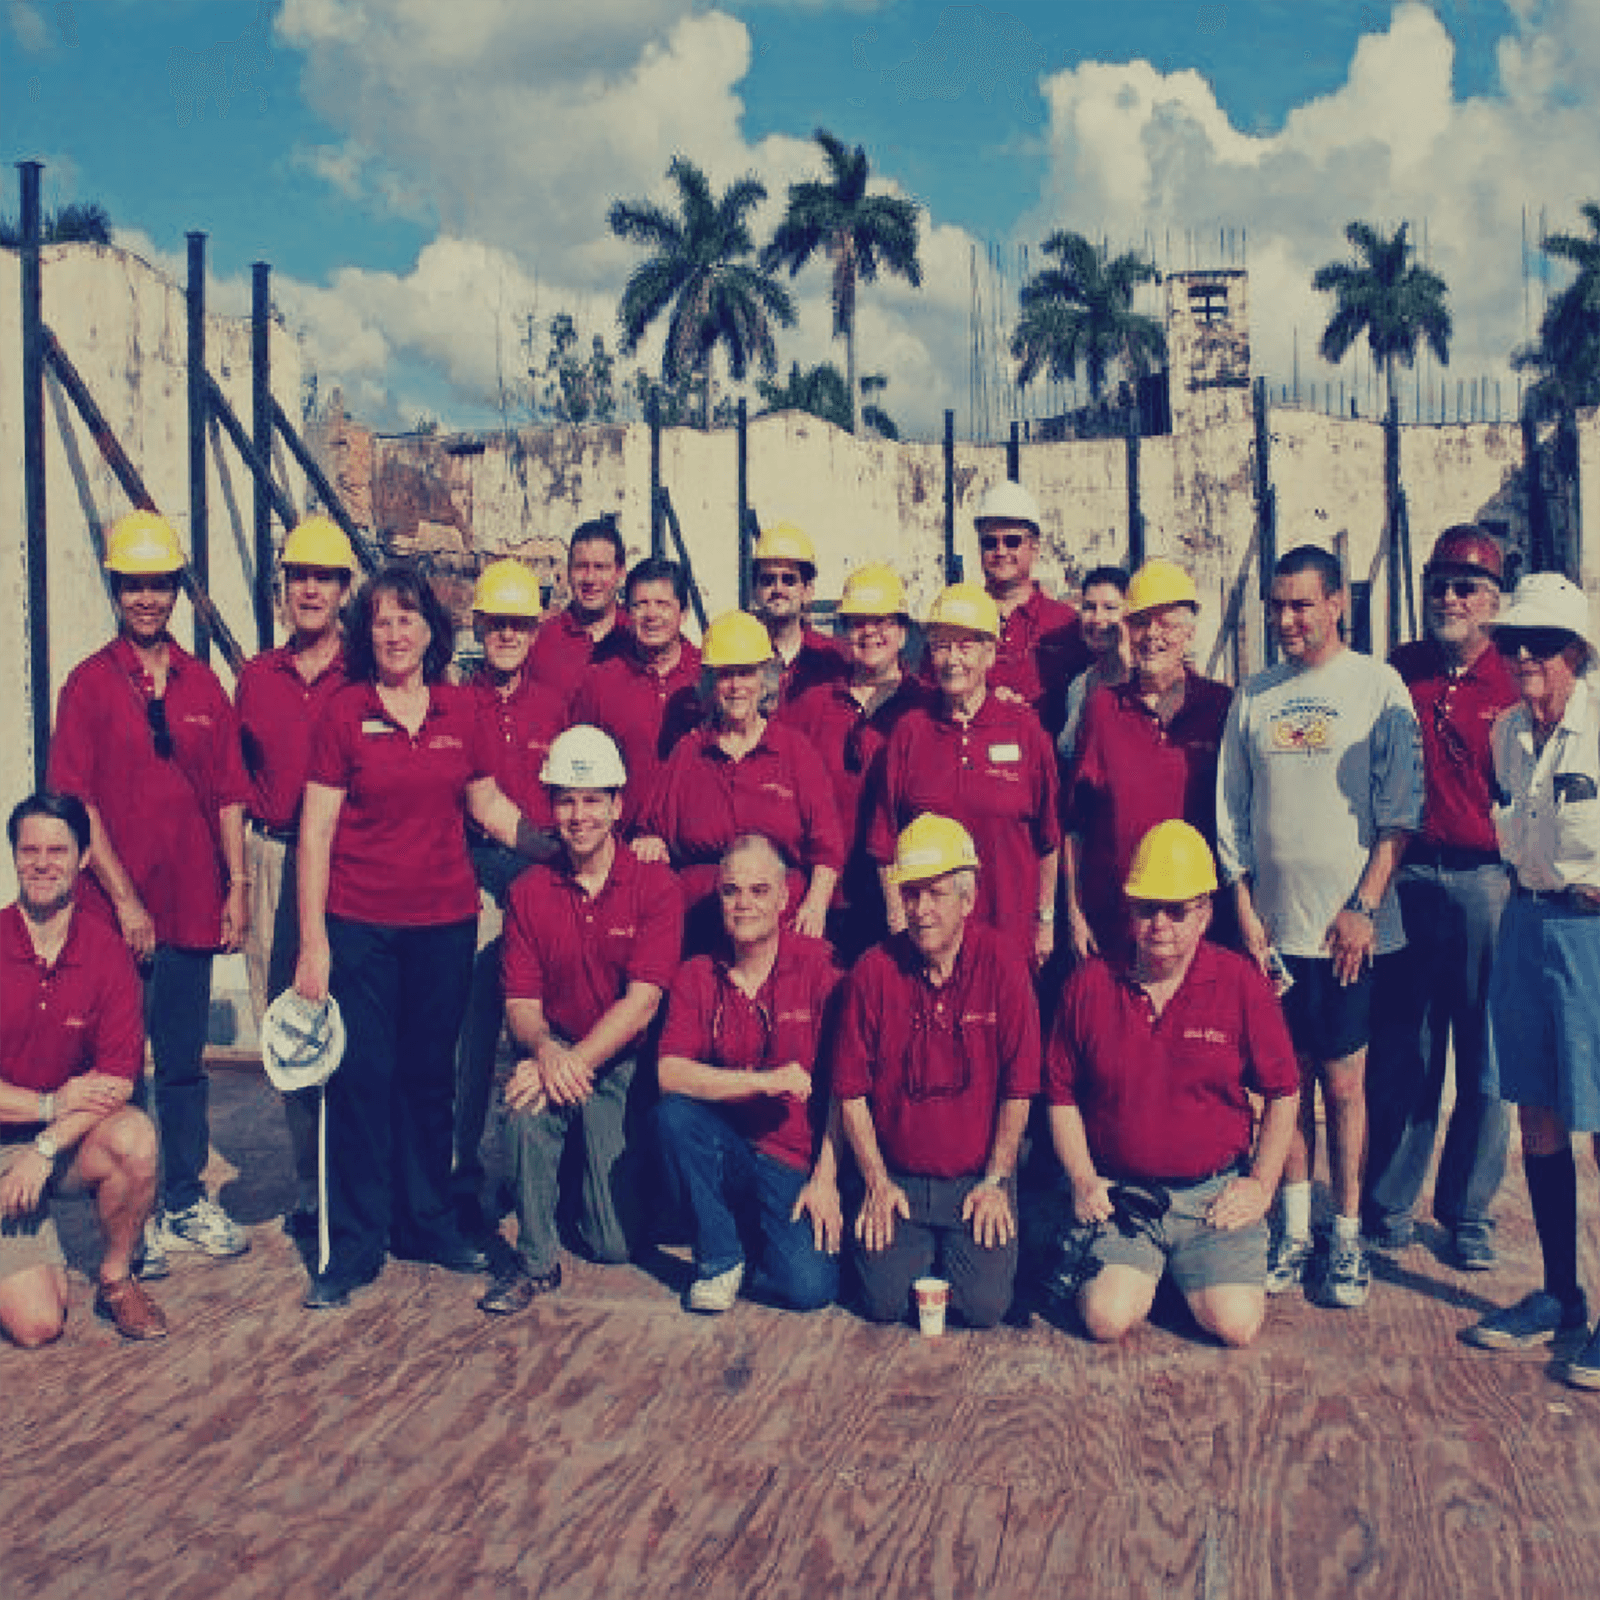 Curtiss Mansion Inc. (CMI), an all-volunteer group, raised the funds to stabi- lize and restore the Mansion, and is currently under contract with the City of Miami Springs to operate and maintain the historic home and gardens.